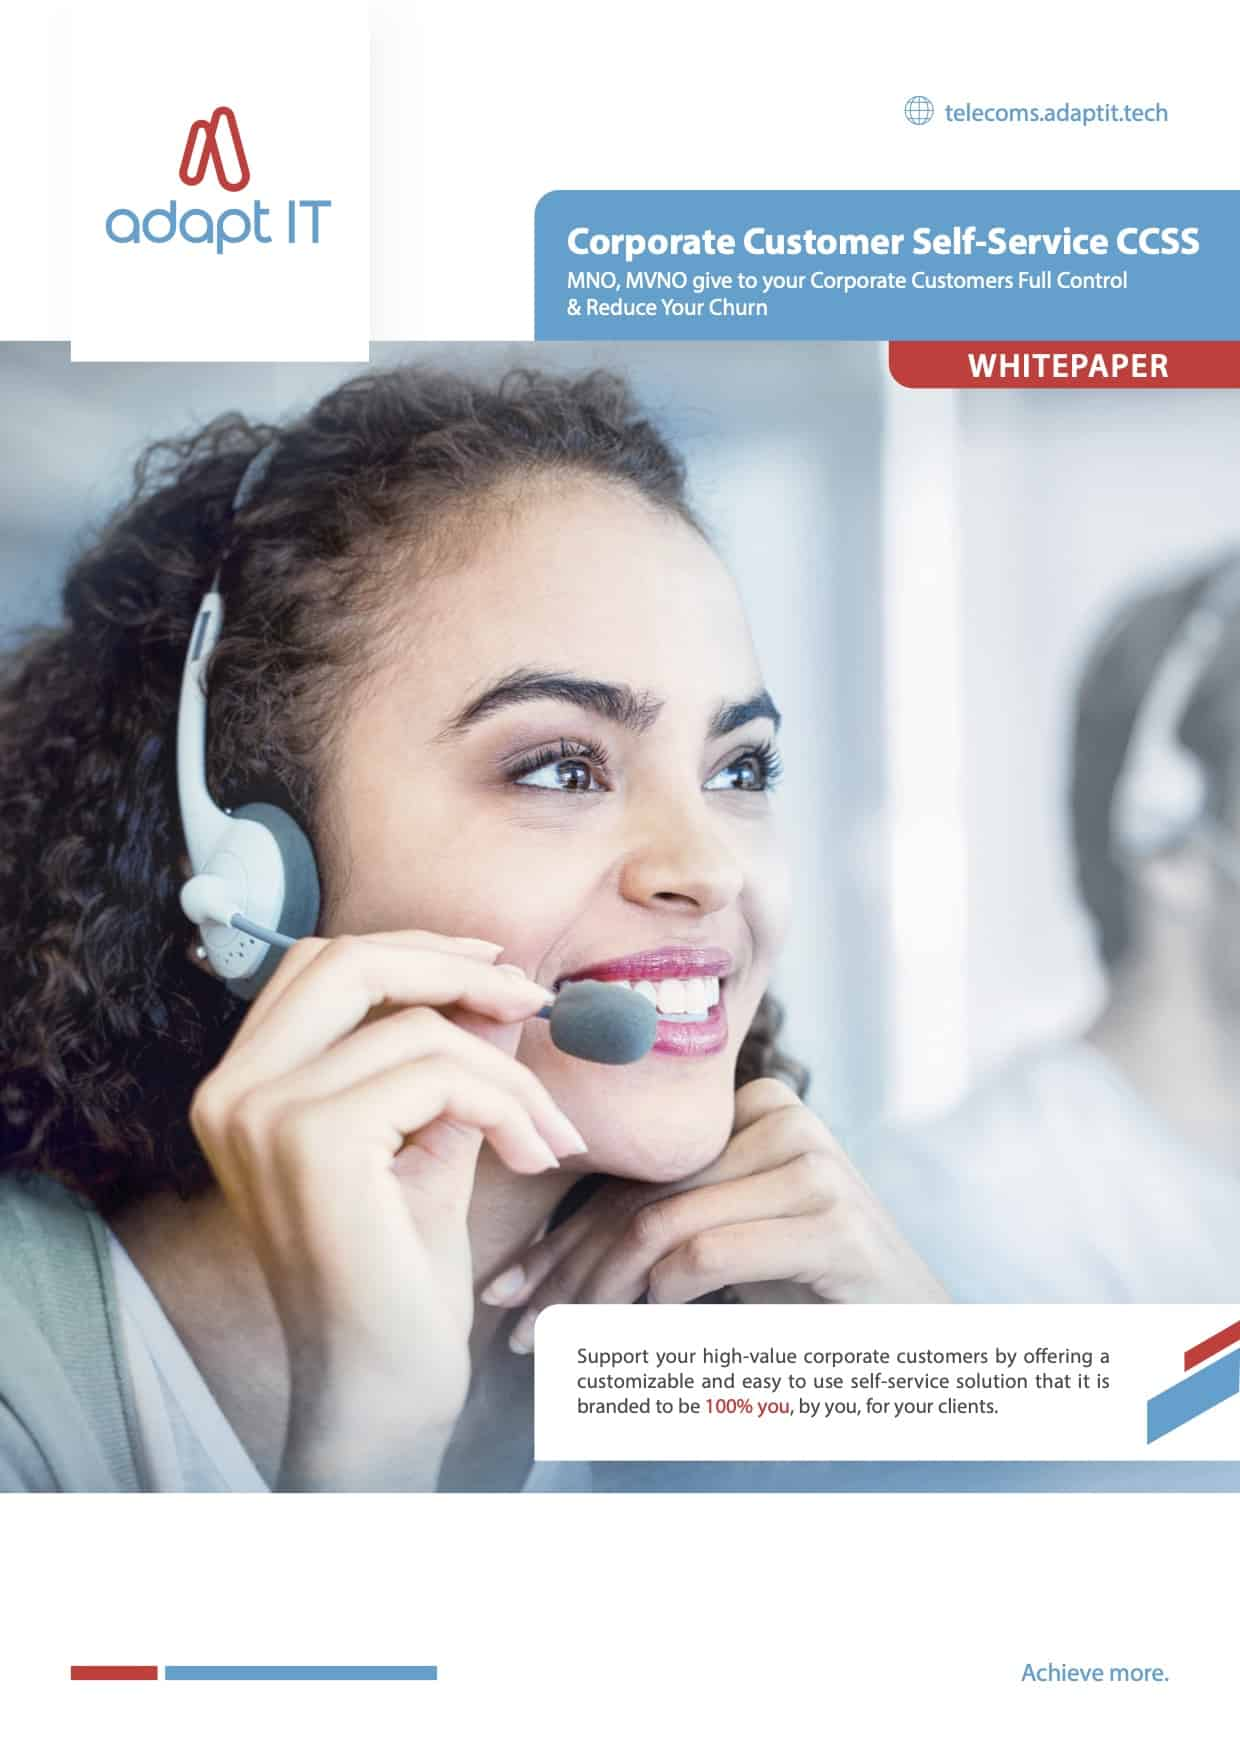 Corporate Customer Self Service CCSS White Paper Myriad font approved